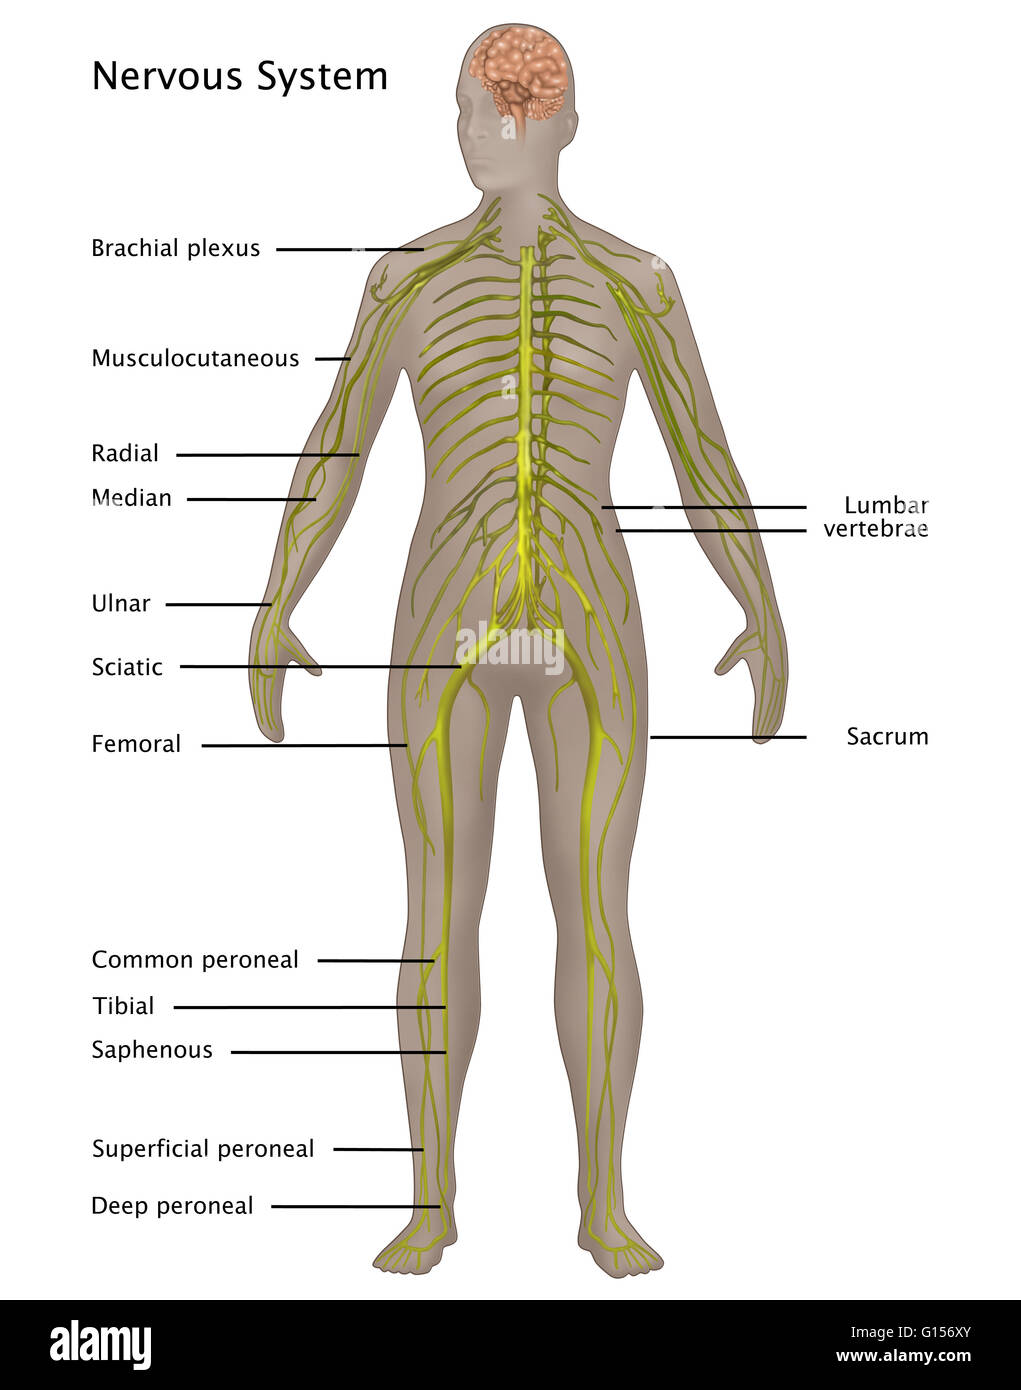 internal brain diagram parts of a turtle illustration the nervous system in female anatomy. labeled stock photo: 103992083 - alamy